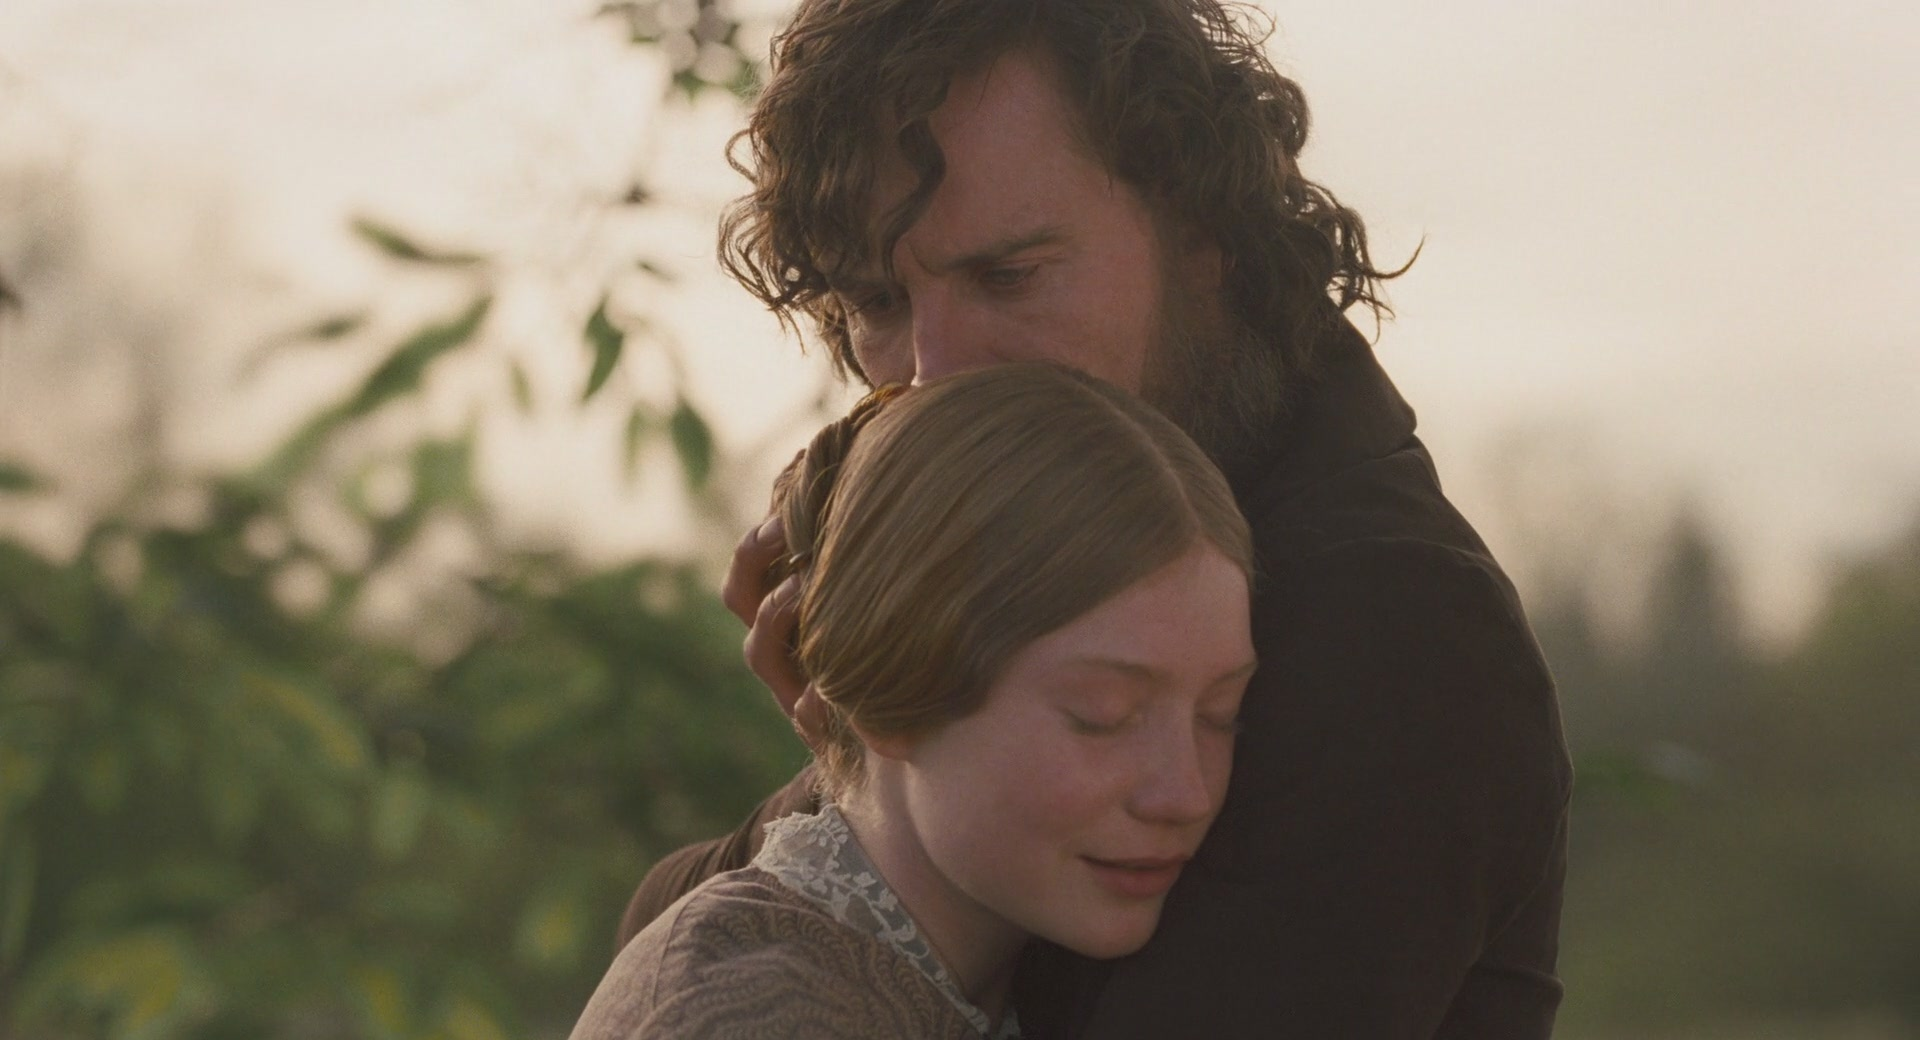 Jane Eyre 2011 images Jane Eyre (2011) HD wallpaper and background ...